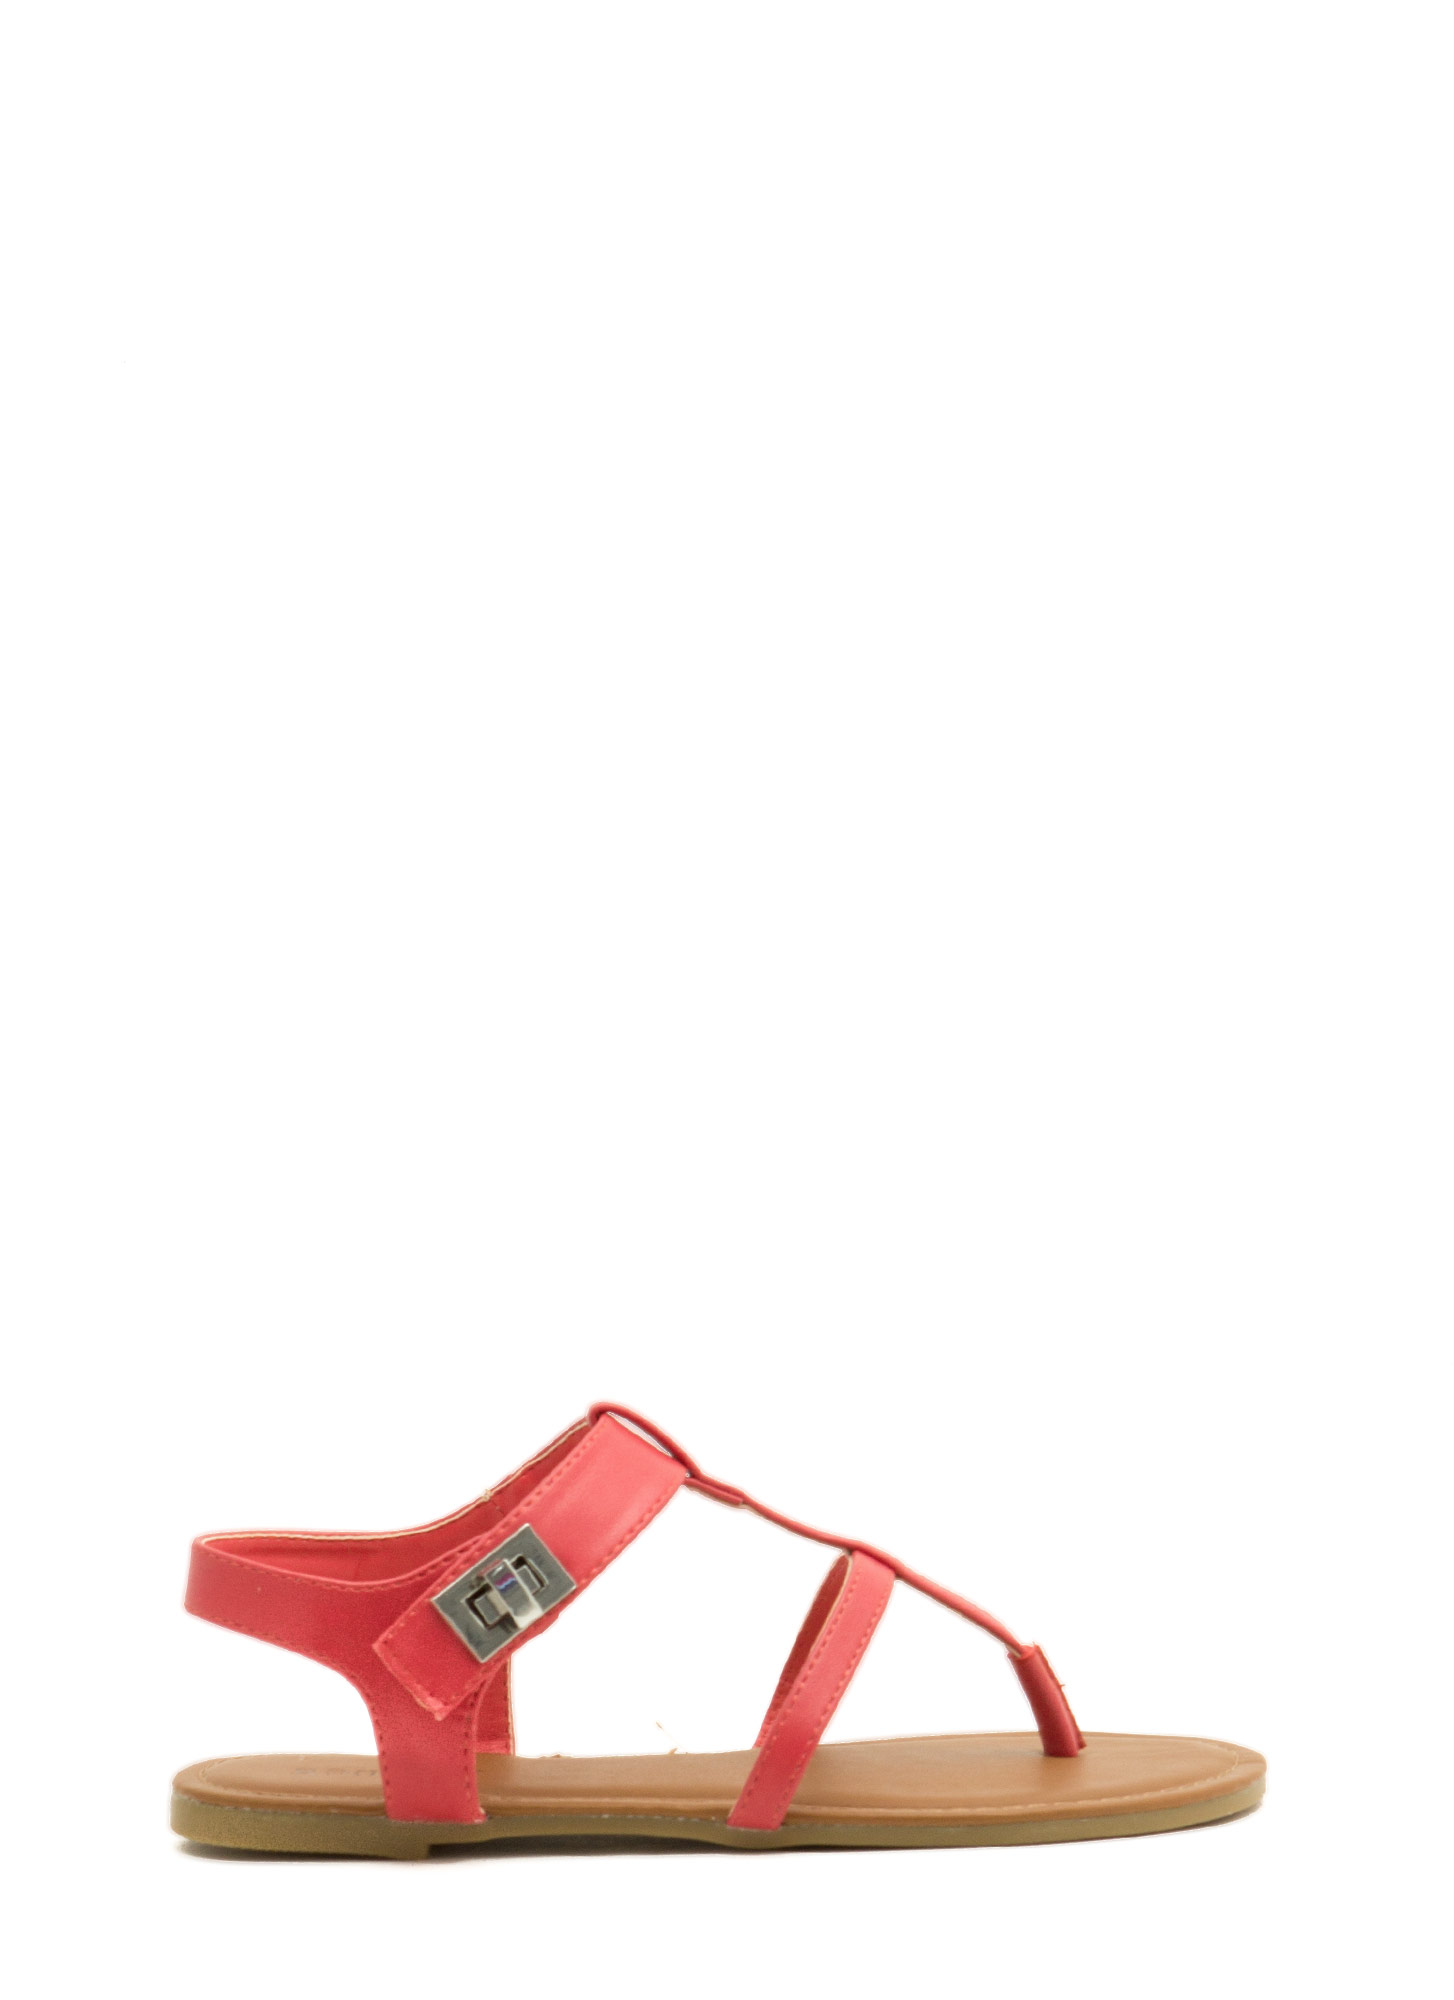 Locked Away Ankle Strap Sandals CORAL